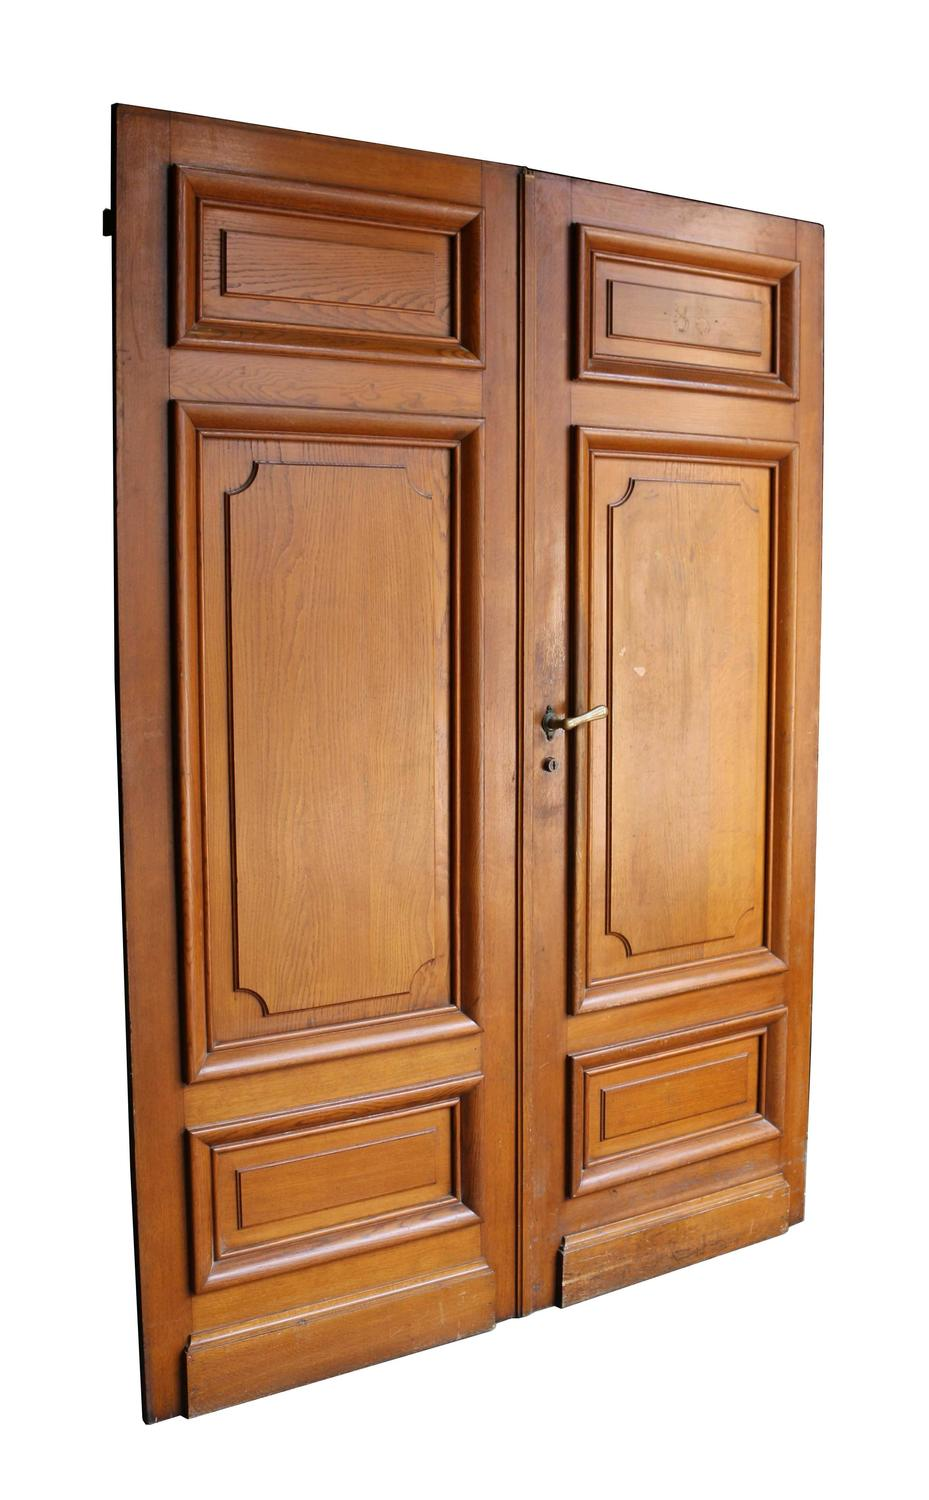 Pair of french oak double doors for sale at 1stdibs for Double doors for sale